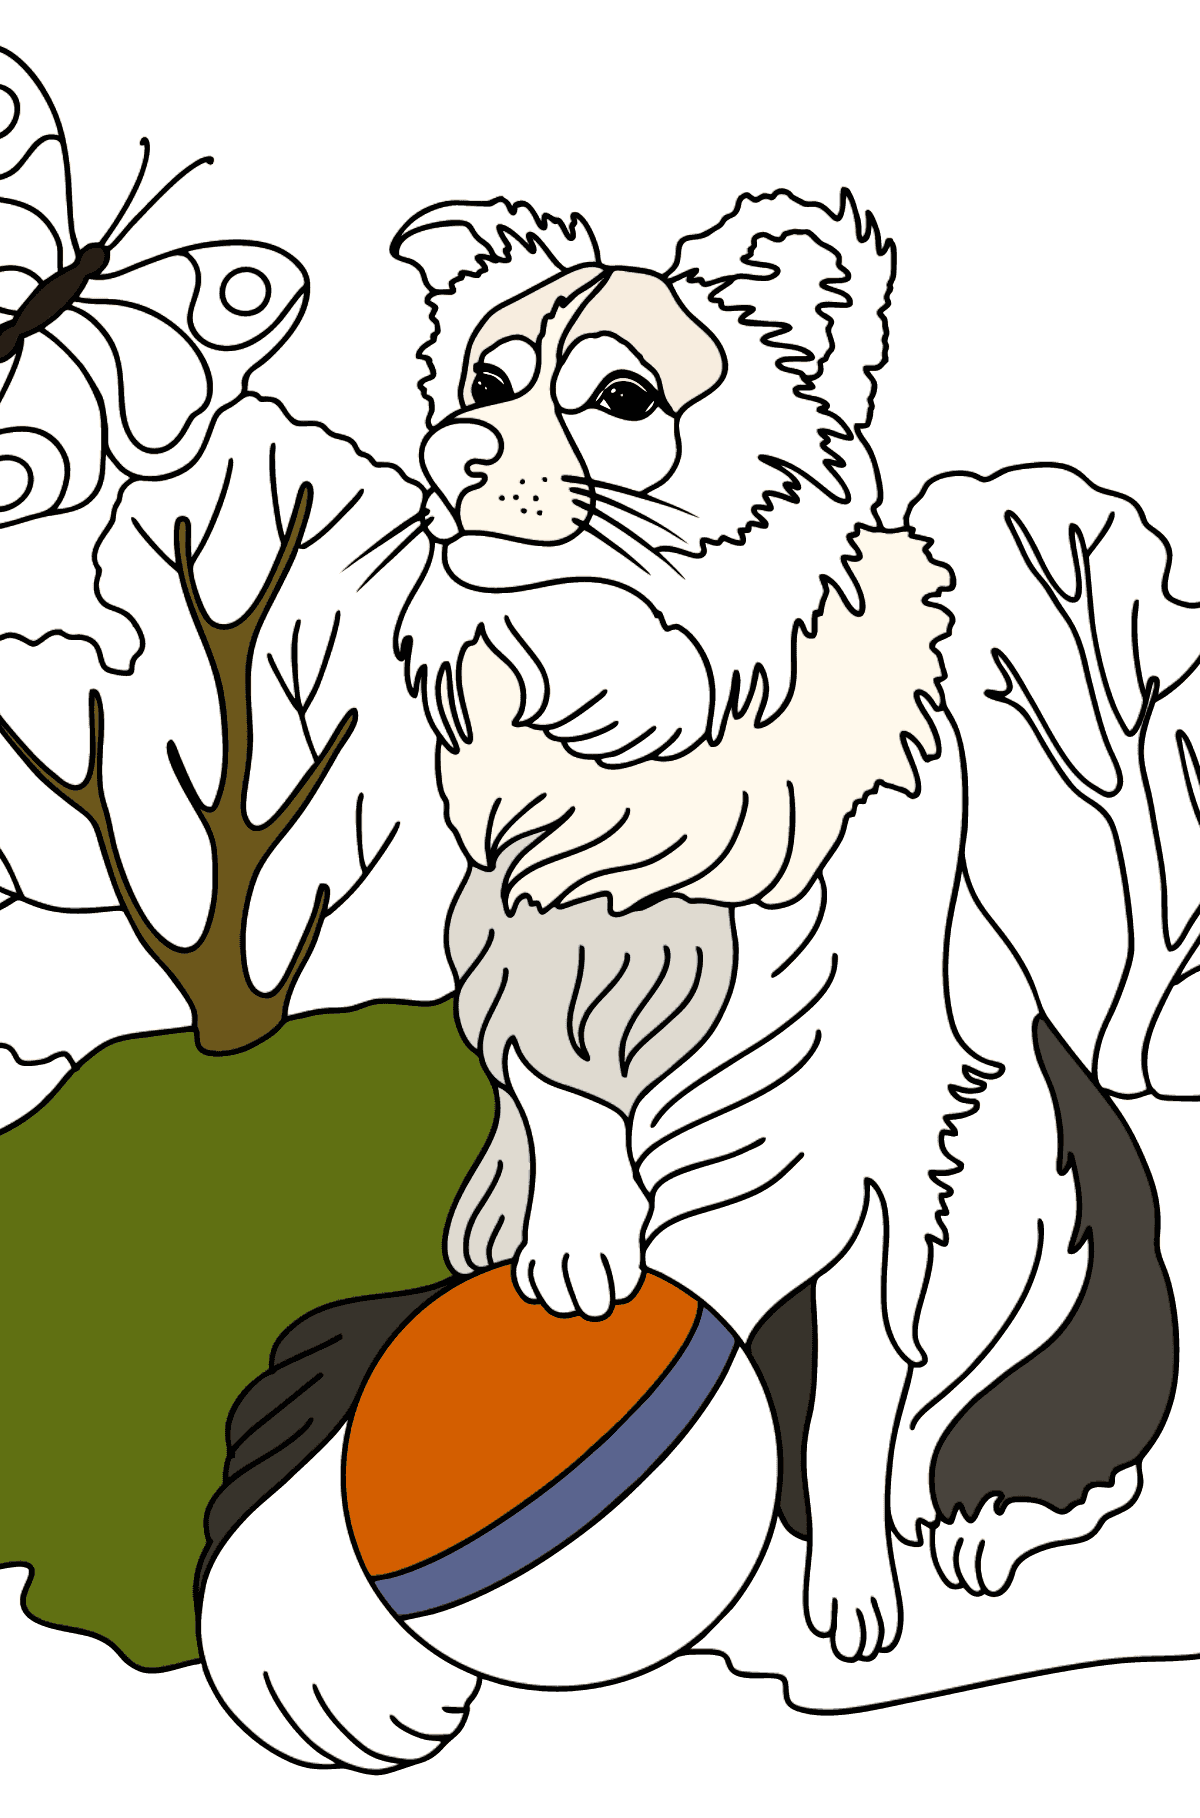 Collie coloring page - Coloring Pages for Kids